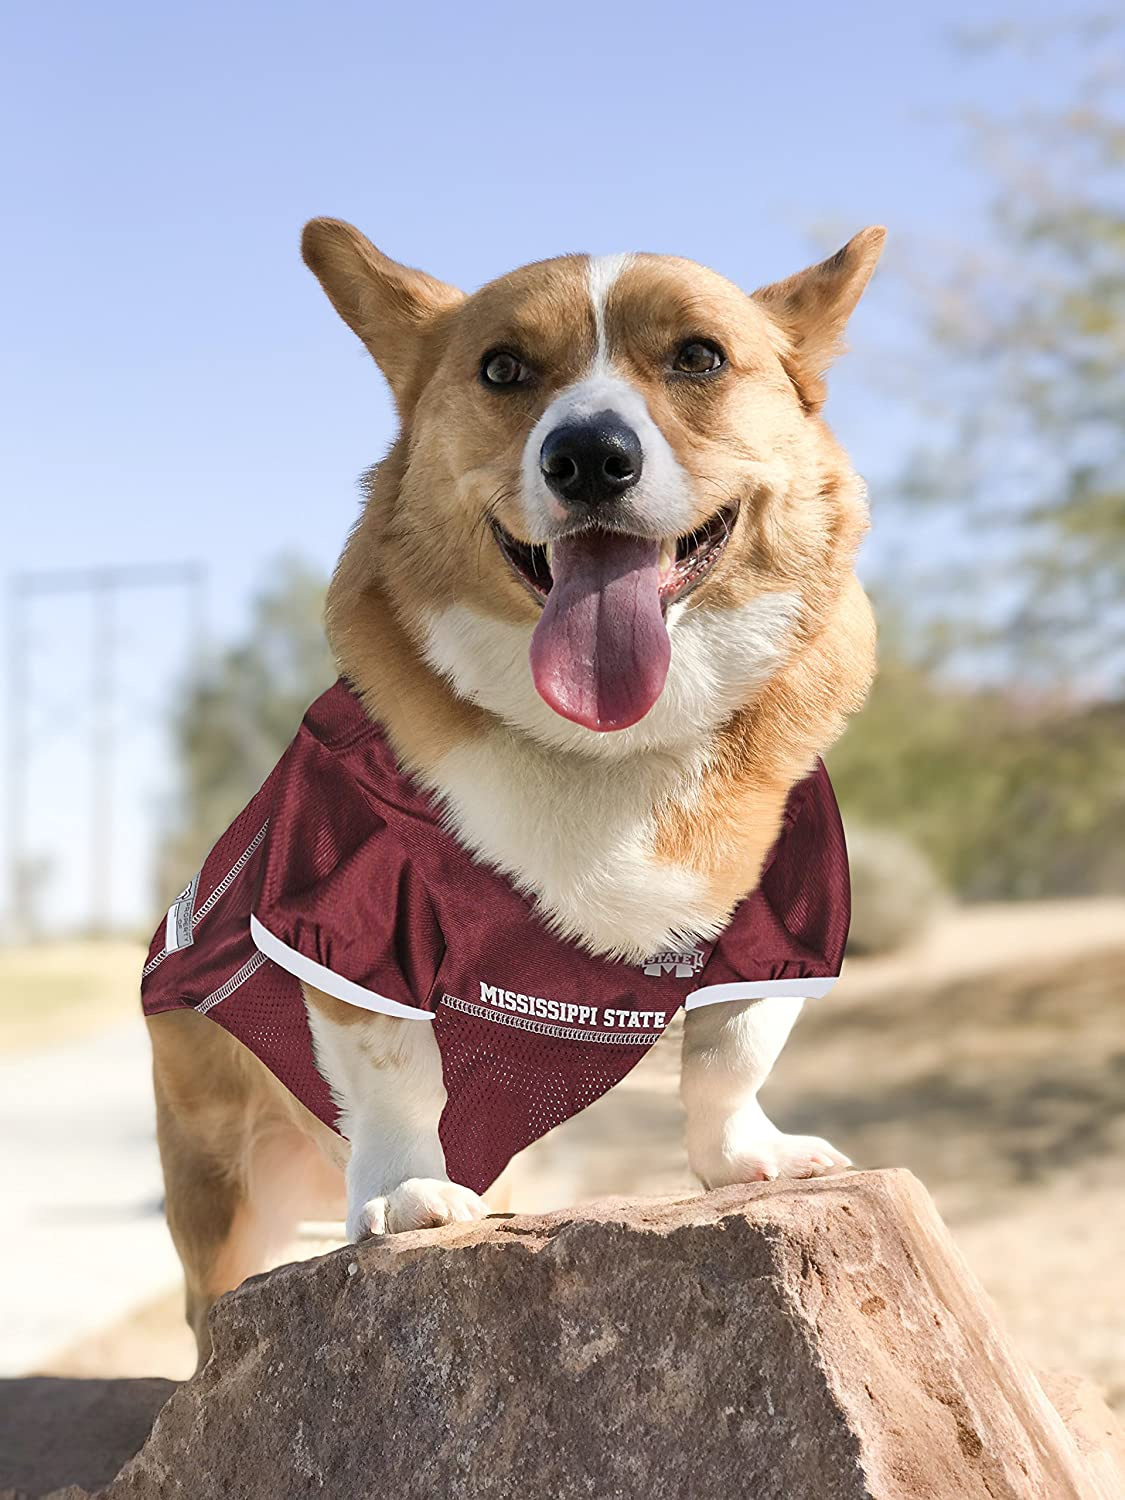 Basketball Jerseys Collegiate Teams /& 7 Sizes Pets First NCAA PET Apparels Football Jerseys for Dogs /& Cats Available in 50